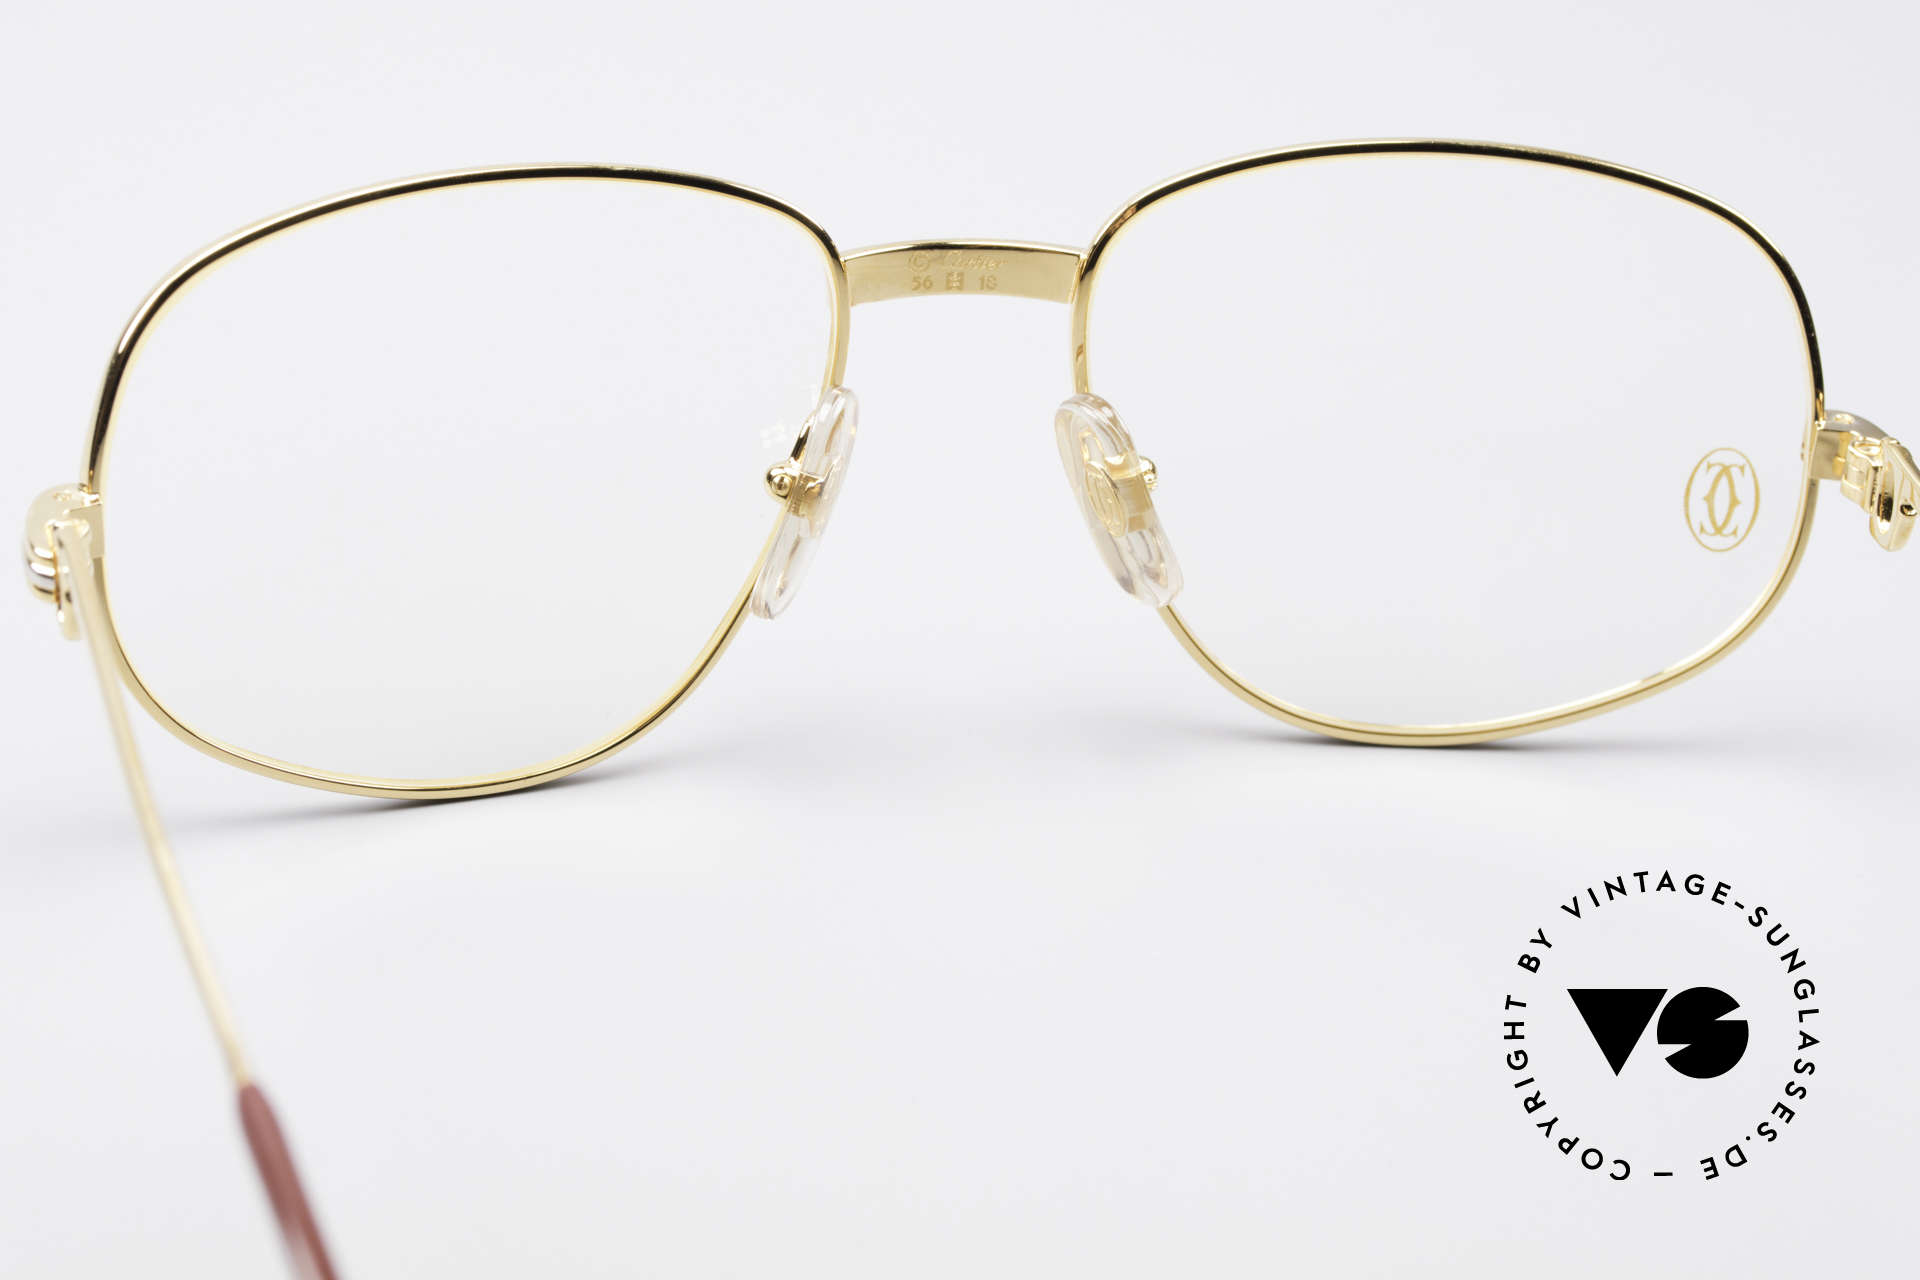 Cartier Romance LC - M Luxury Designer Glasses, 22ct gold-plated frame (like all vintage Cartier originals), Made for Men and Women